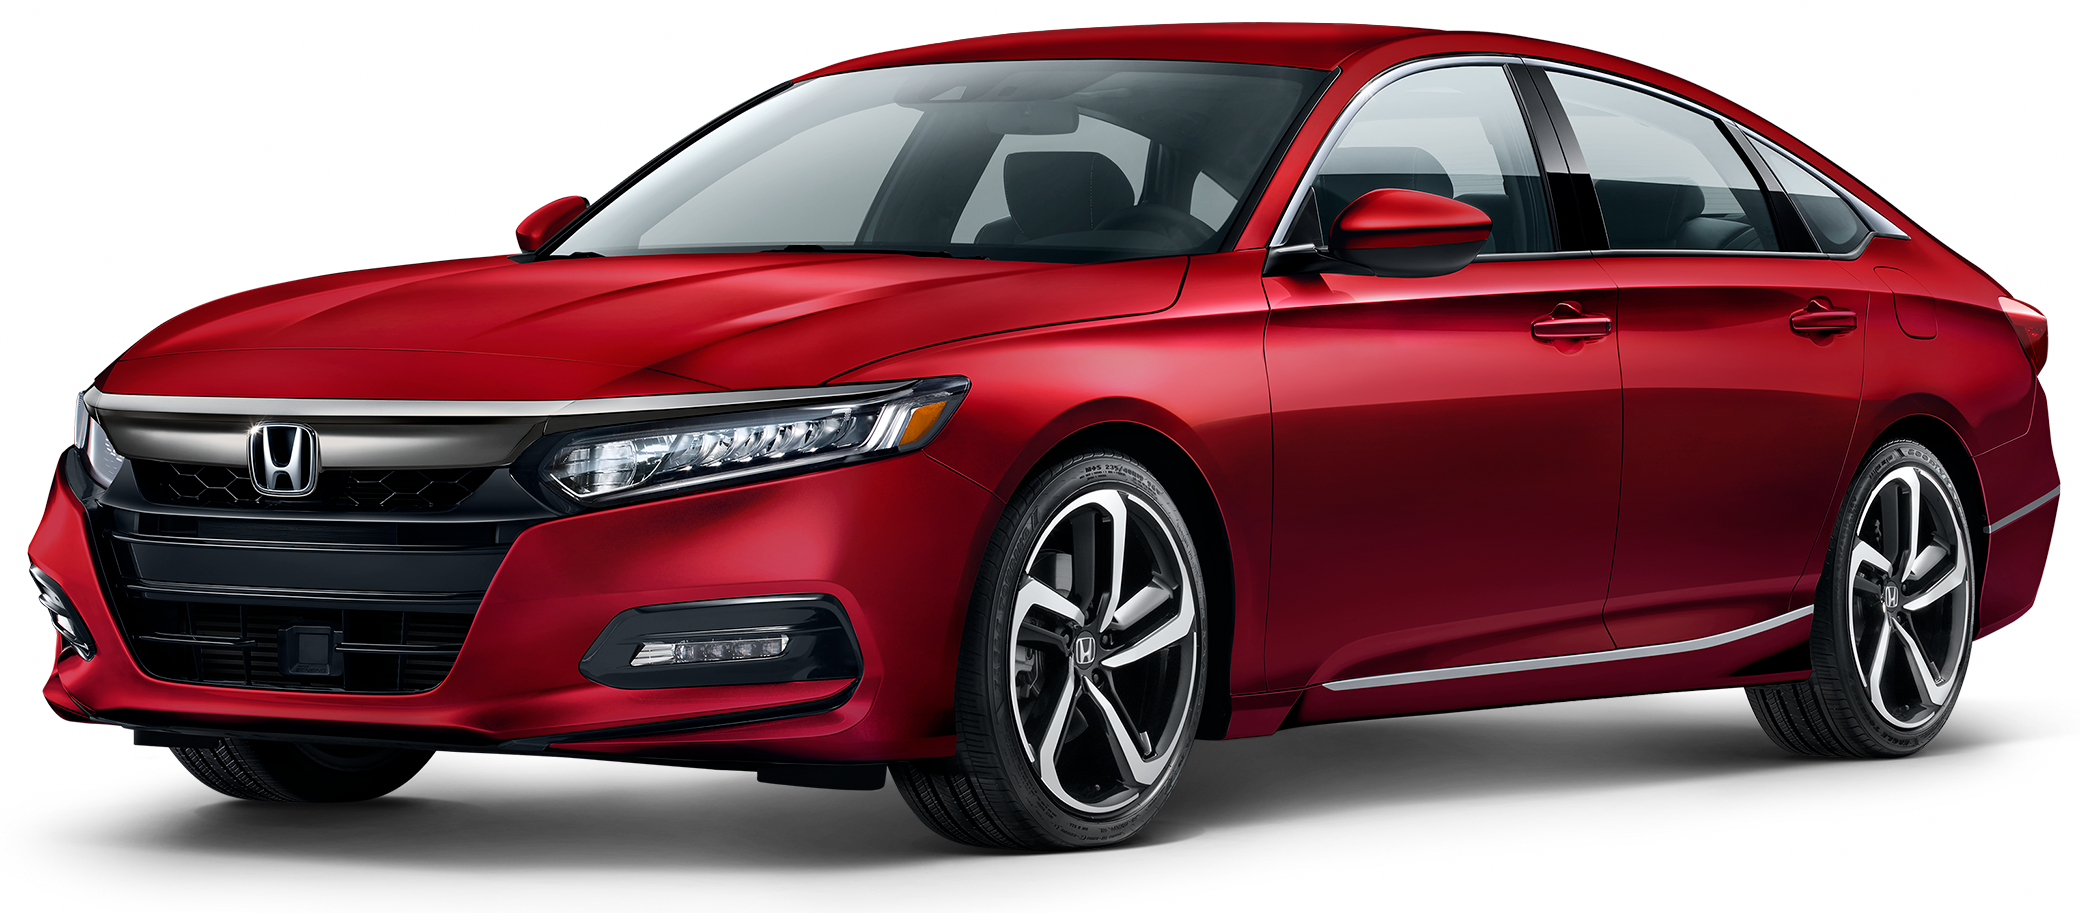 http://images.dealer.com/ddc/vehicles/2020/Honda/Accord/Sedan/trim_Sport_15T_fd4230/perspective/front-left/2020_76.png